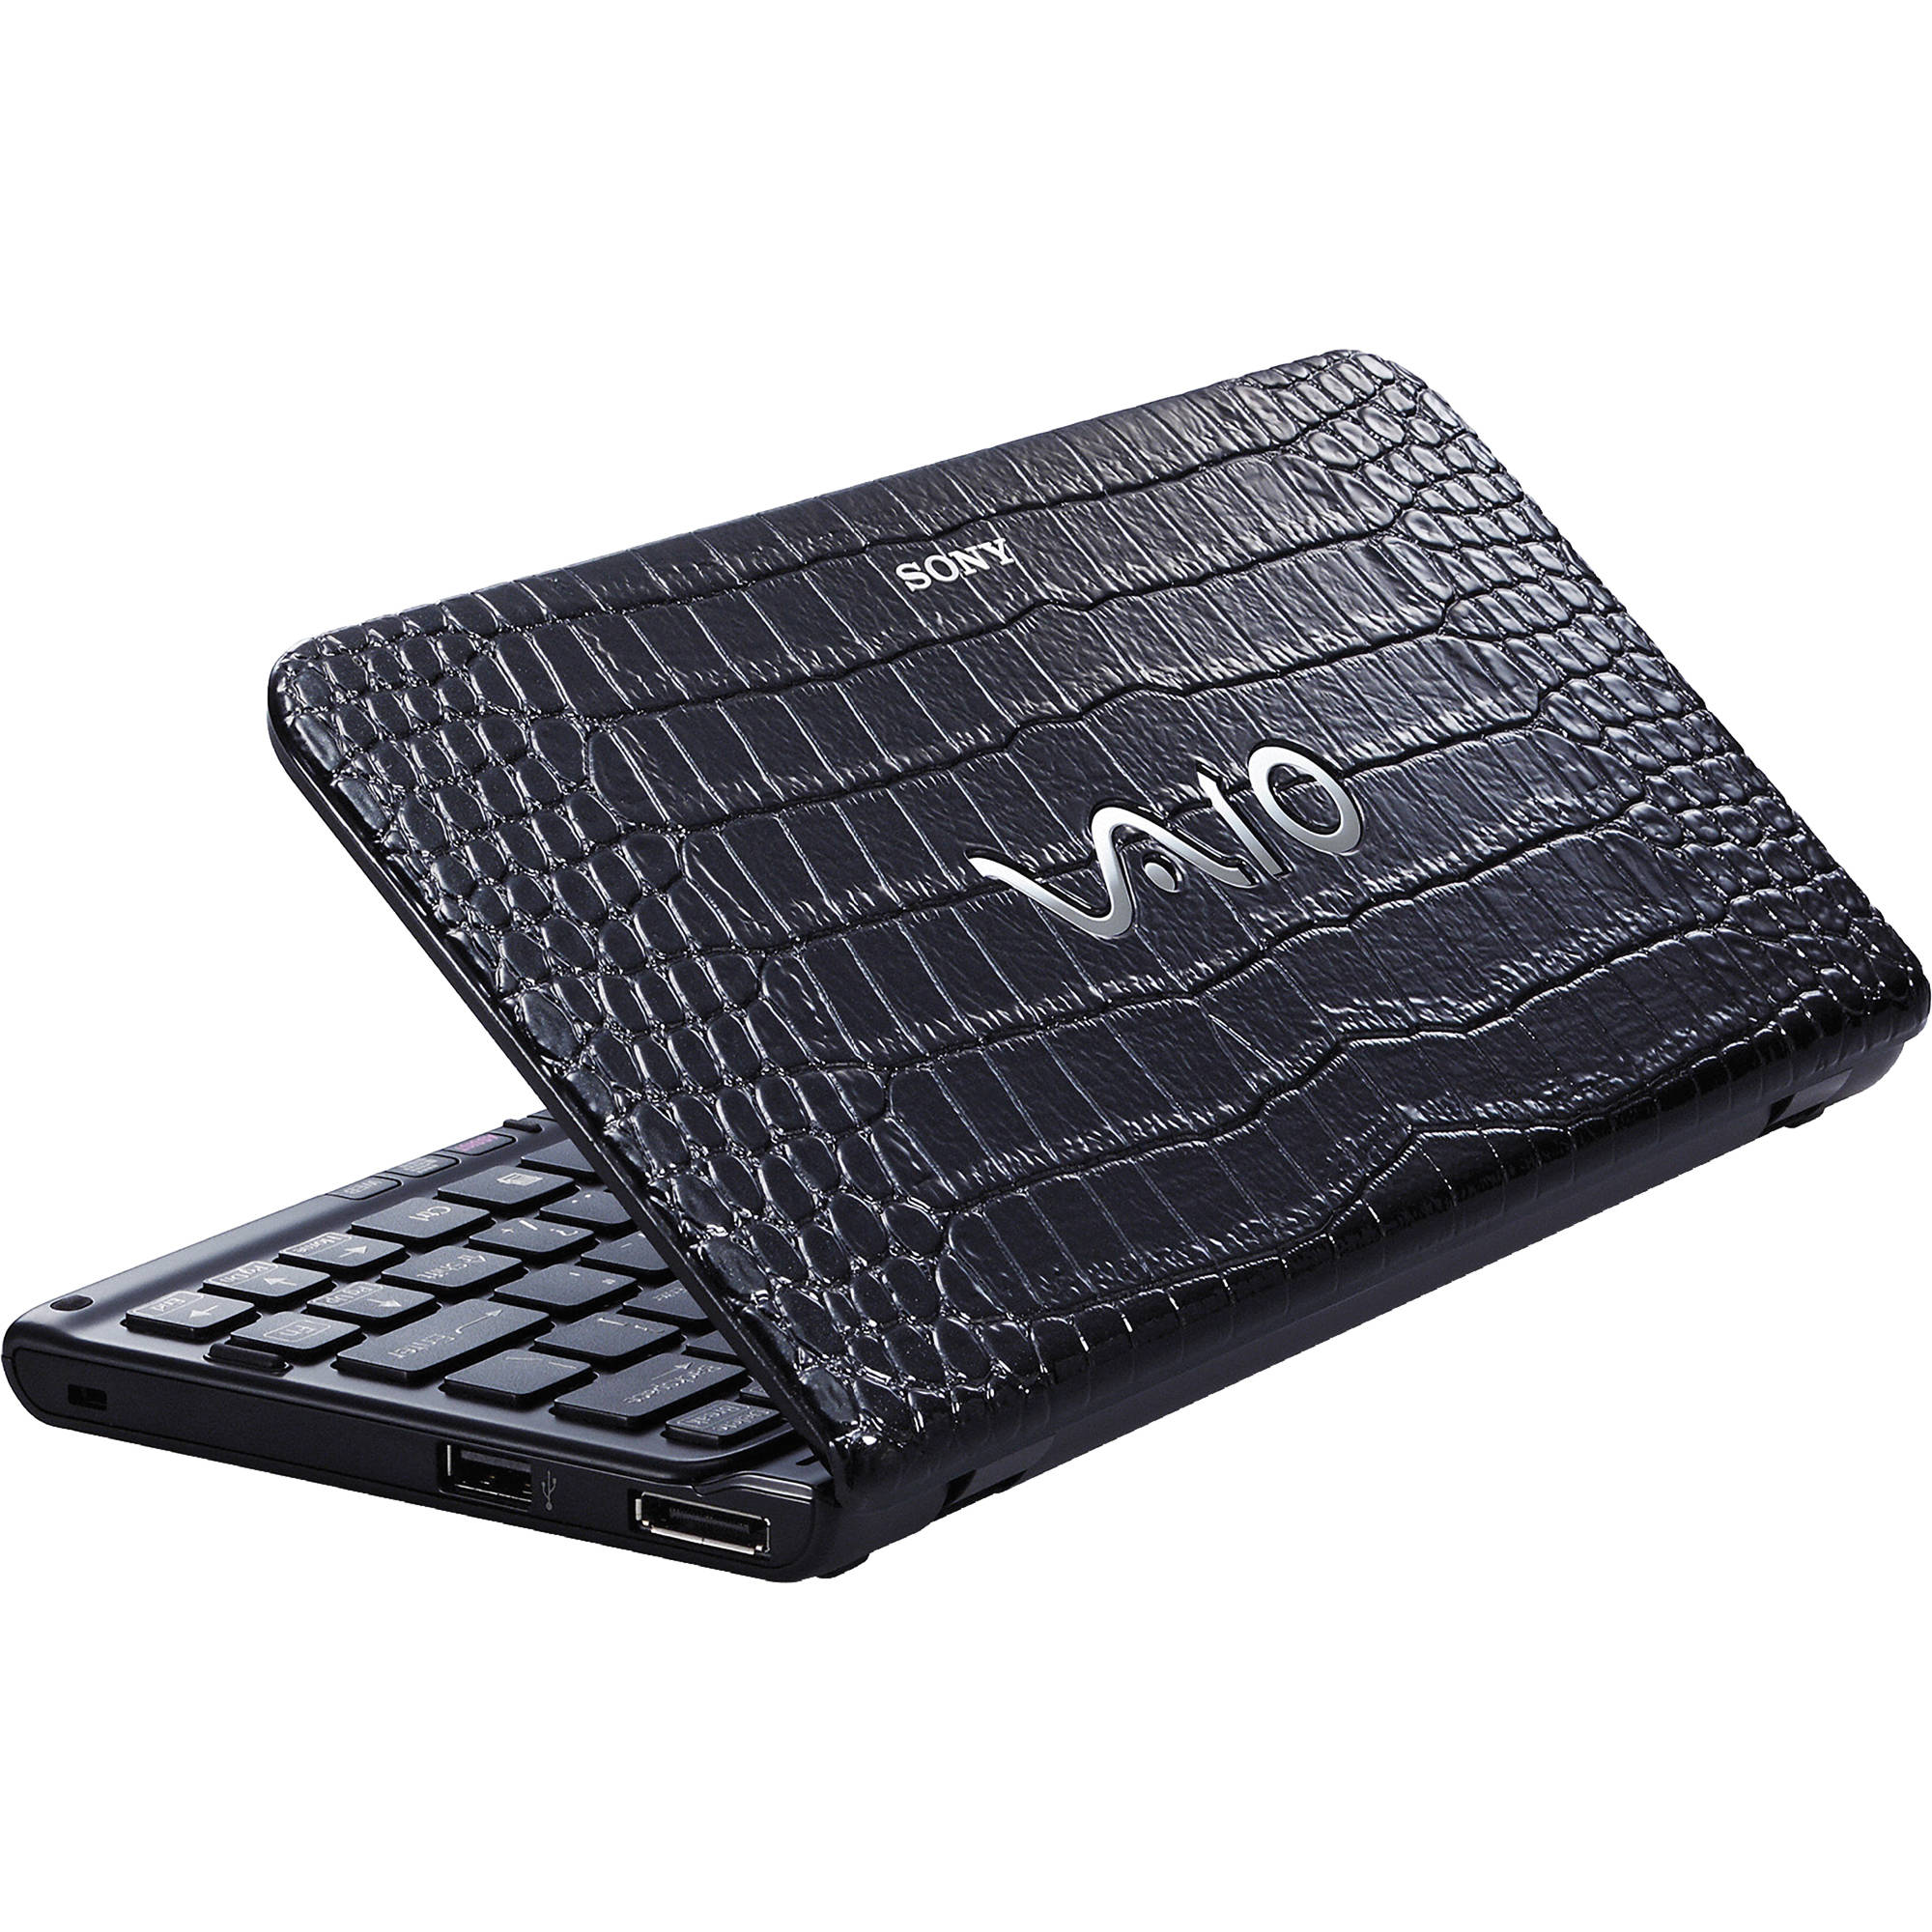 SONY VAIO VPCP11SKXBI CARD READER WINDOWS VISTA DRIVER DOWNLOAD